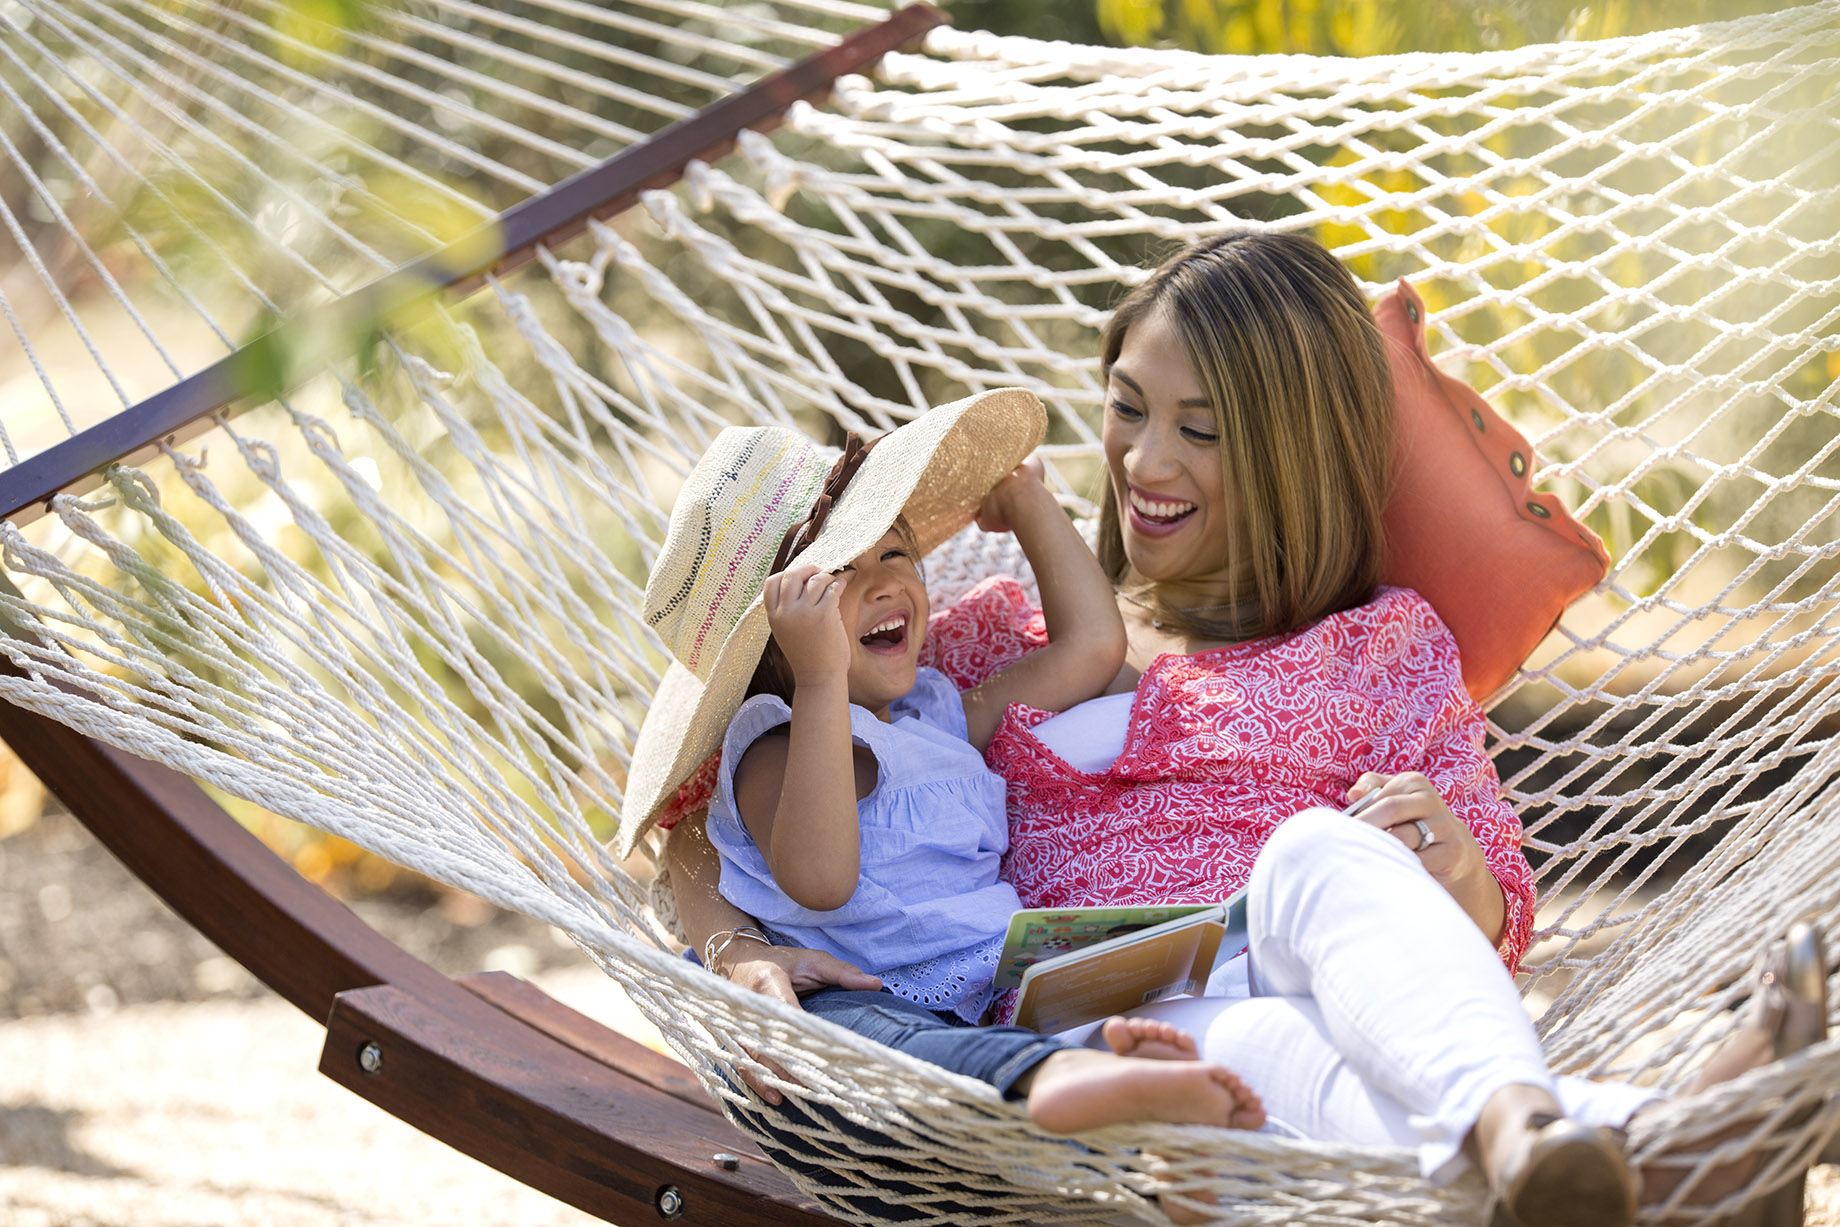 San Francisco Bay Area Advertising, Lifestyle, Commercial Photographer, mother and daugther in a swing hammock outdoor, afternoon, summer, black female and kids